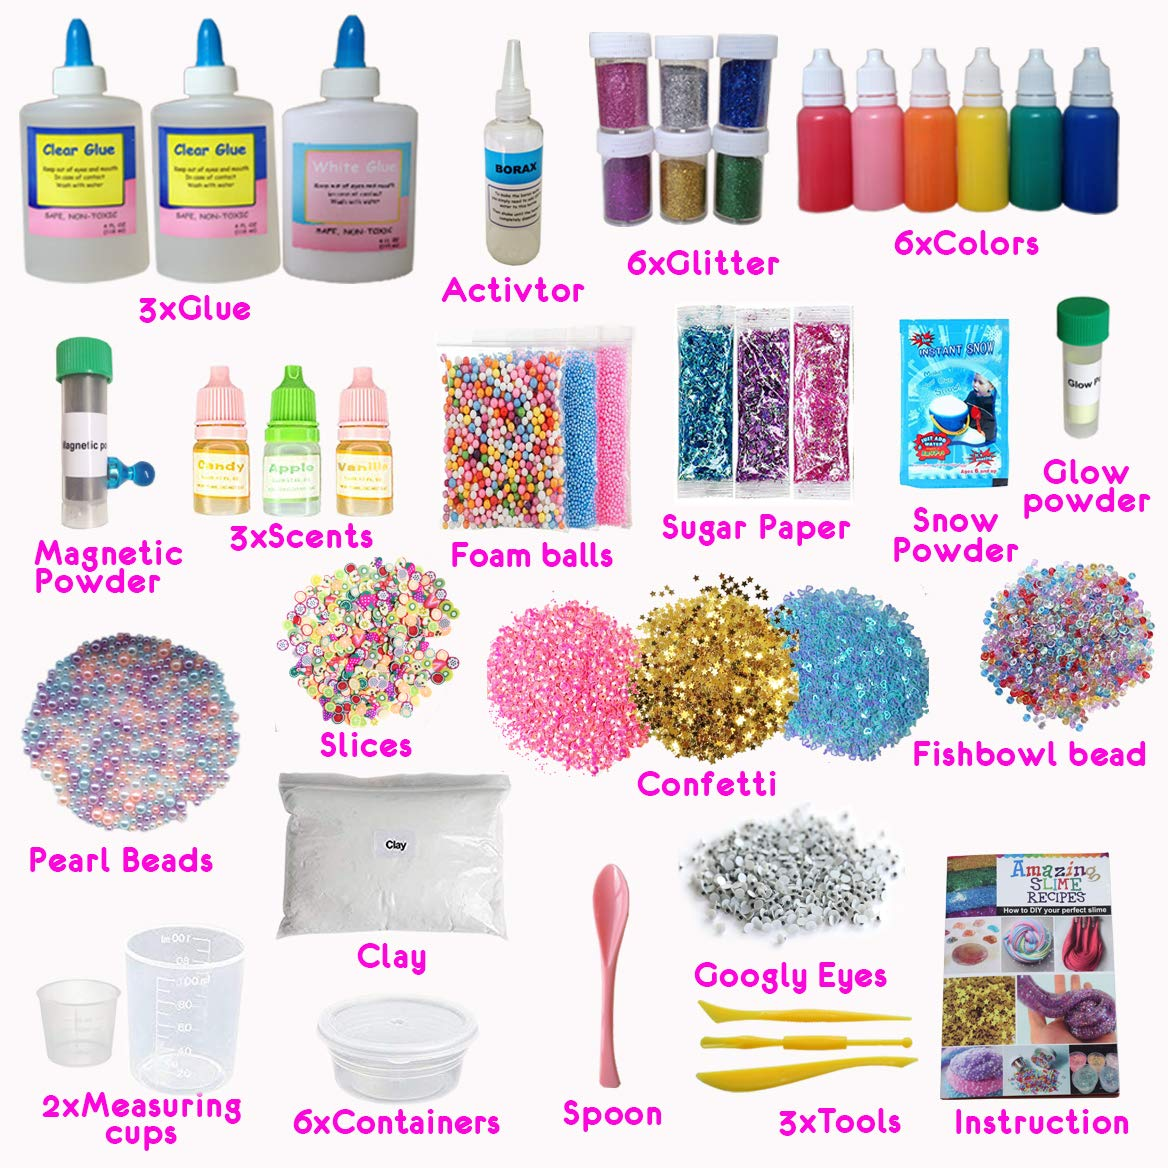 ecoZen Lifestyle Ultimate Slime Kit for Girls - Best Value Unicorn DIY Slime Supplies Kits for Making Tons of Various Fail-Proof Slimes - Perfect Birthday Toys Gifts for 7 8 9 10 11 12 Year Old Girls by ecoZen Lifestyle (Image #2)